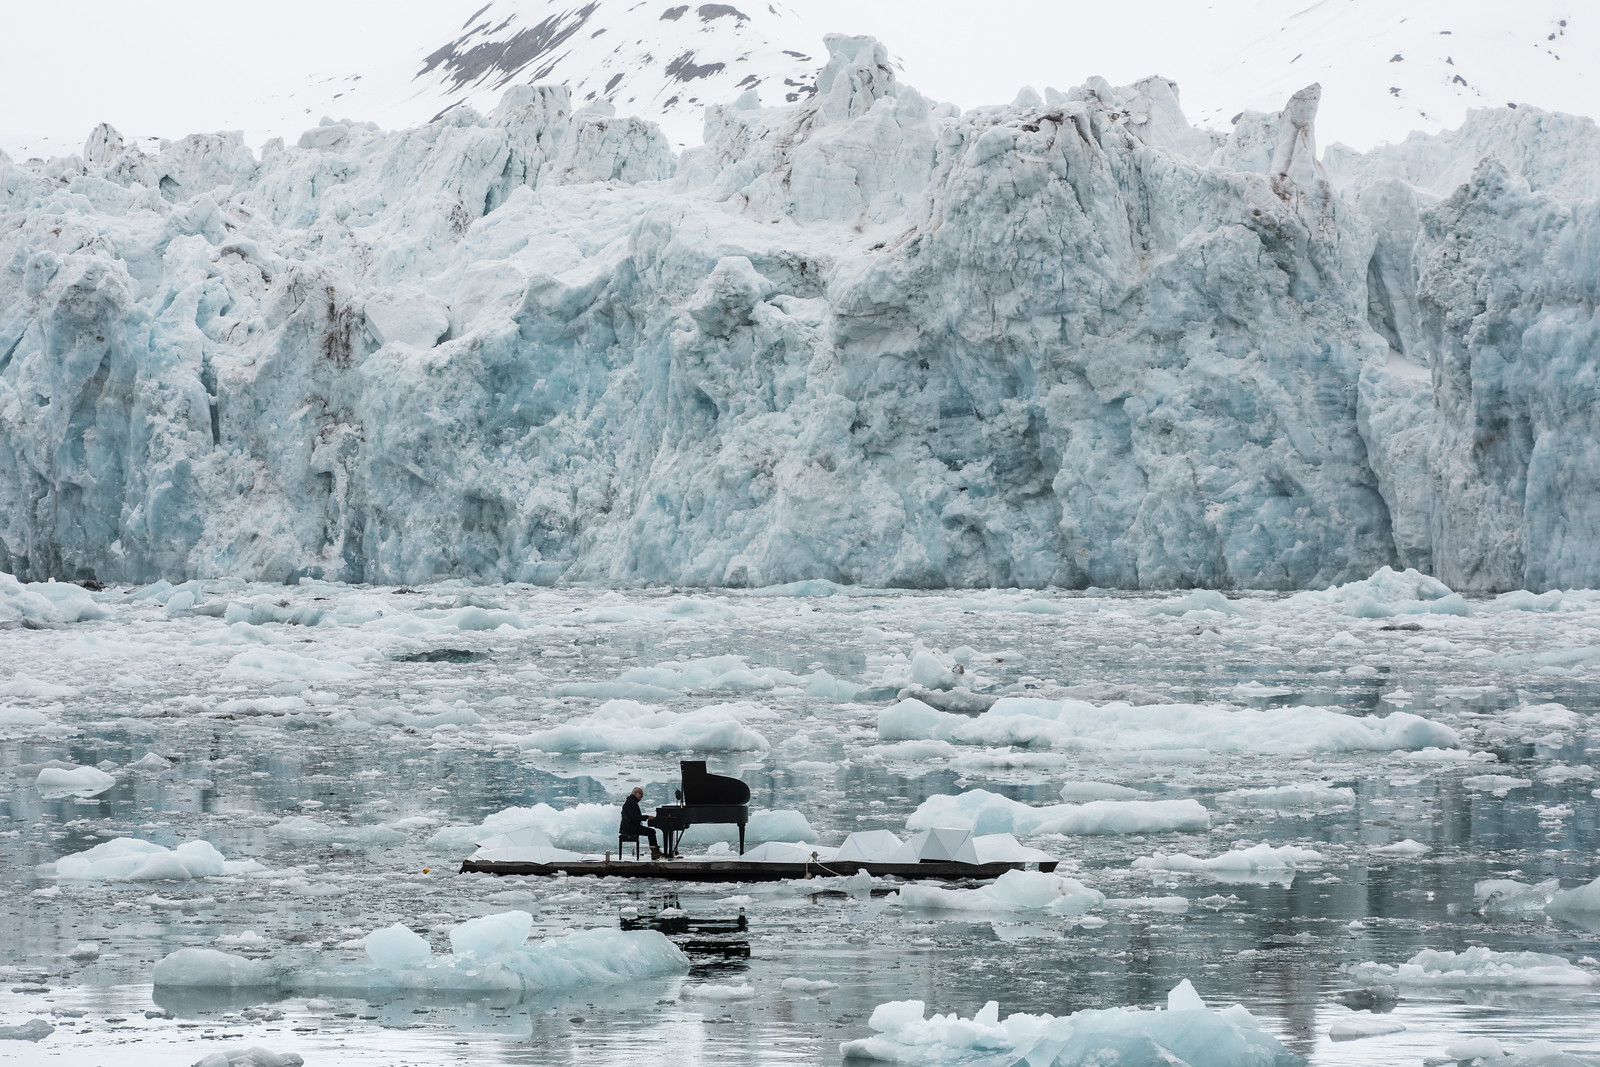 16/06/2016. Wahlenbergbreen Glacier, Svalbard, Norway. Greenpeace holds a historic performance with pianist Ludovico Einaudi on the Arctic Ocean to call for its protection. Through his music, acclaimed Italian composer and pianist Ludovico Einaudi has added his voice to those of eight million people from across the world demanding protection for the Arctic. Einaudi performed one of his own compositions on a floating platform in the middle of the Ocean, against the backdrop of the Wahlenbergbreen glacier (in Svalbard, Norway). The famous musician travelled on board Greenpeace ship Arctic Sunrise on the eve of a significant event for the future of the Arctic: this week's meeting of the OSPAR Commission, which could secure the first protected area in Arctic international waters. ©Greenpeace/Pedro Armestre Greenpeace organiza un concierto histórico con el pianista Ludovico Einaudi en el océano Ártico para pedir su protección. El prestigioso compositor y pianista italiano Ludovico Einaudi ha unido su voz, a través de la música, a la de los ocho millones de personas de todo el mundo que piden la protección del Ártico, con la interpretación de una pieza creada especialmente para la ocasión sobre una plataforma flotante en mitad de ese océano, frente al glaciar Wahlenbergbreen (en Svalbard, Noruega). Einaudi ha viajado al Ártico a bordo del barco de Greenpeace Arctic Sunrise, coincidiendo con el comienzo en Tenerife de una importante cita para el futuro del Ártico: la reunión esta semana de la comisión OSPAR, que podría asegurar la creación de la primera zona protegida en aguas internacionales del océano Ártico. © Pedro Armestre/ Greenpeace Handout - No sales - No Archives - Editorial Use Only - Free use only for 14 days after release. Photo provided by GREENPEACE, distributed handout photo to be used only to illustrate news reporting or commentary on the facts or events depicted in this image.